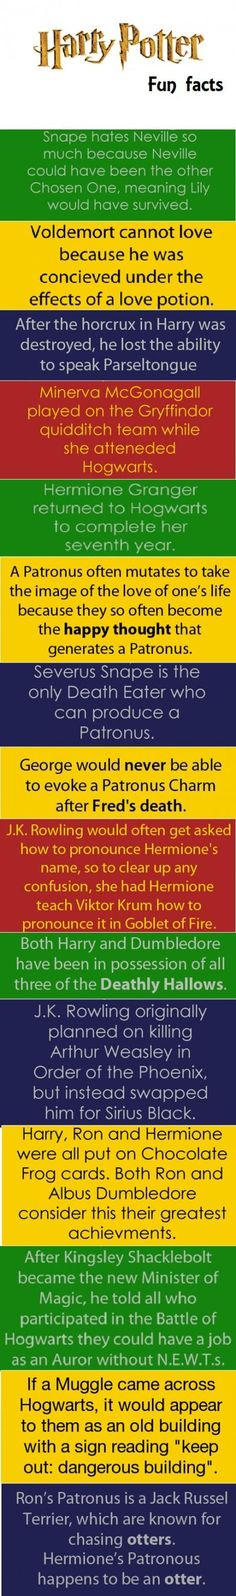 Harry Potter facts you probably didn't know. Wait... ARE YOU FUDGING KIDDING ME?!? YOU BLOODY TELLING ME THAT SIRIUS WAS SUPPOSE TO LIVE?! WHAT THE FREAK!